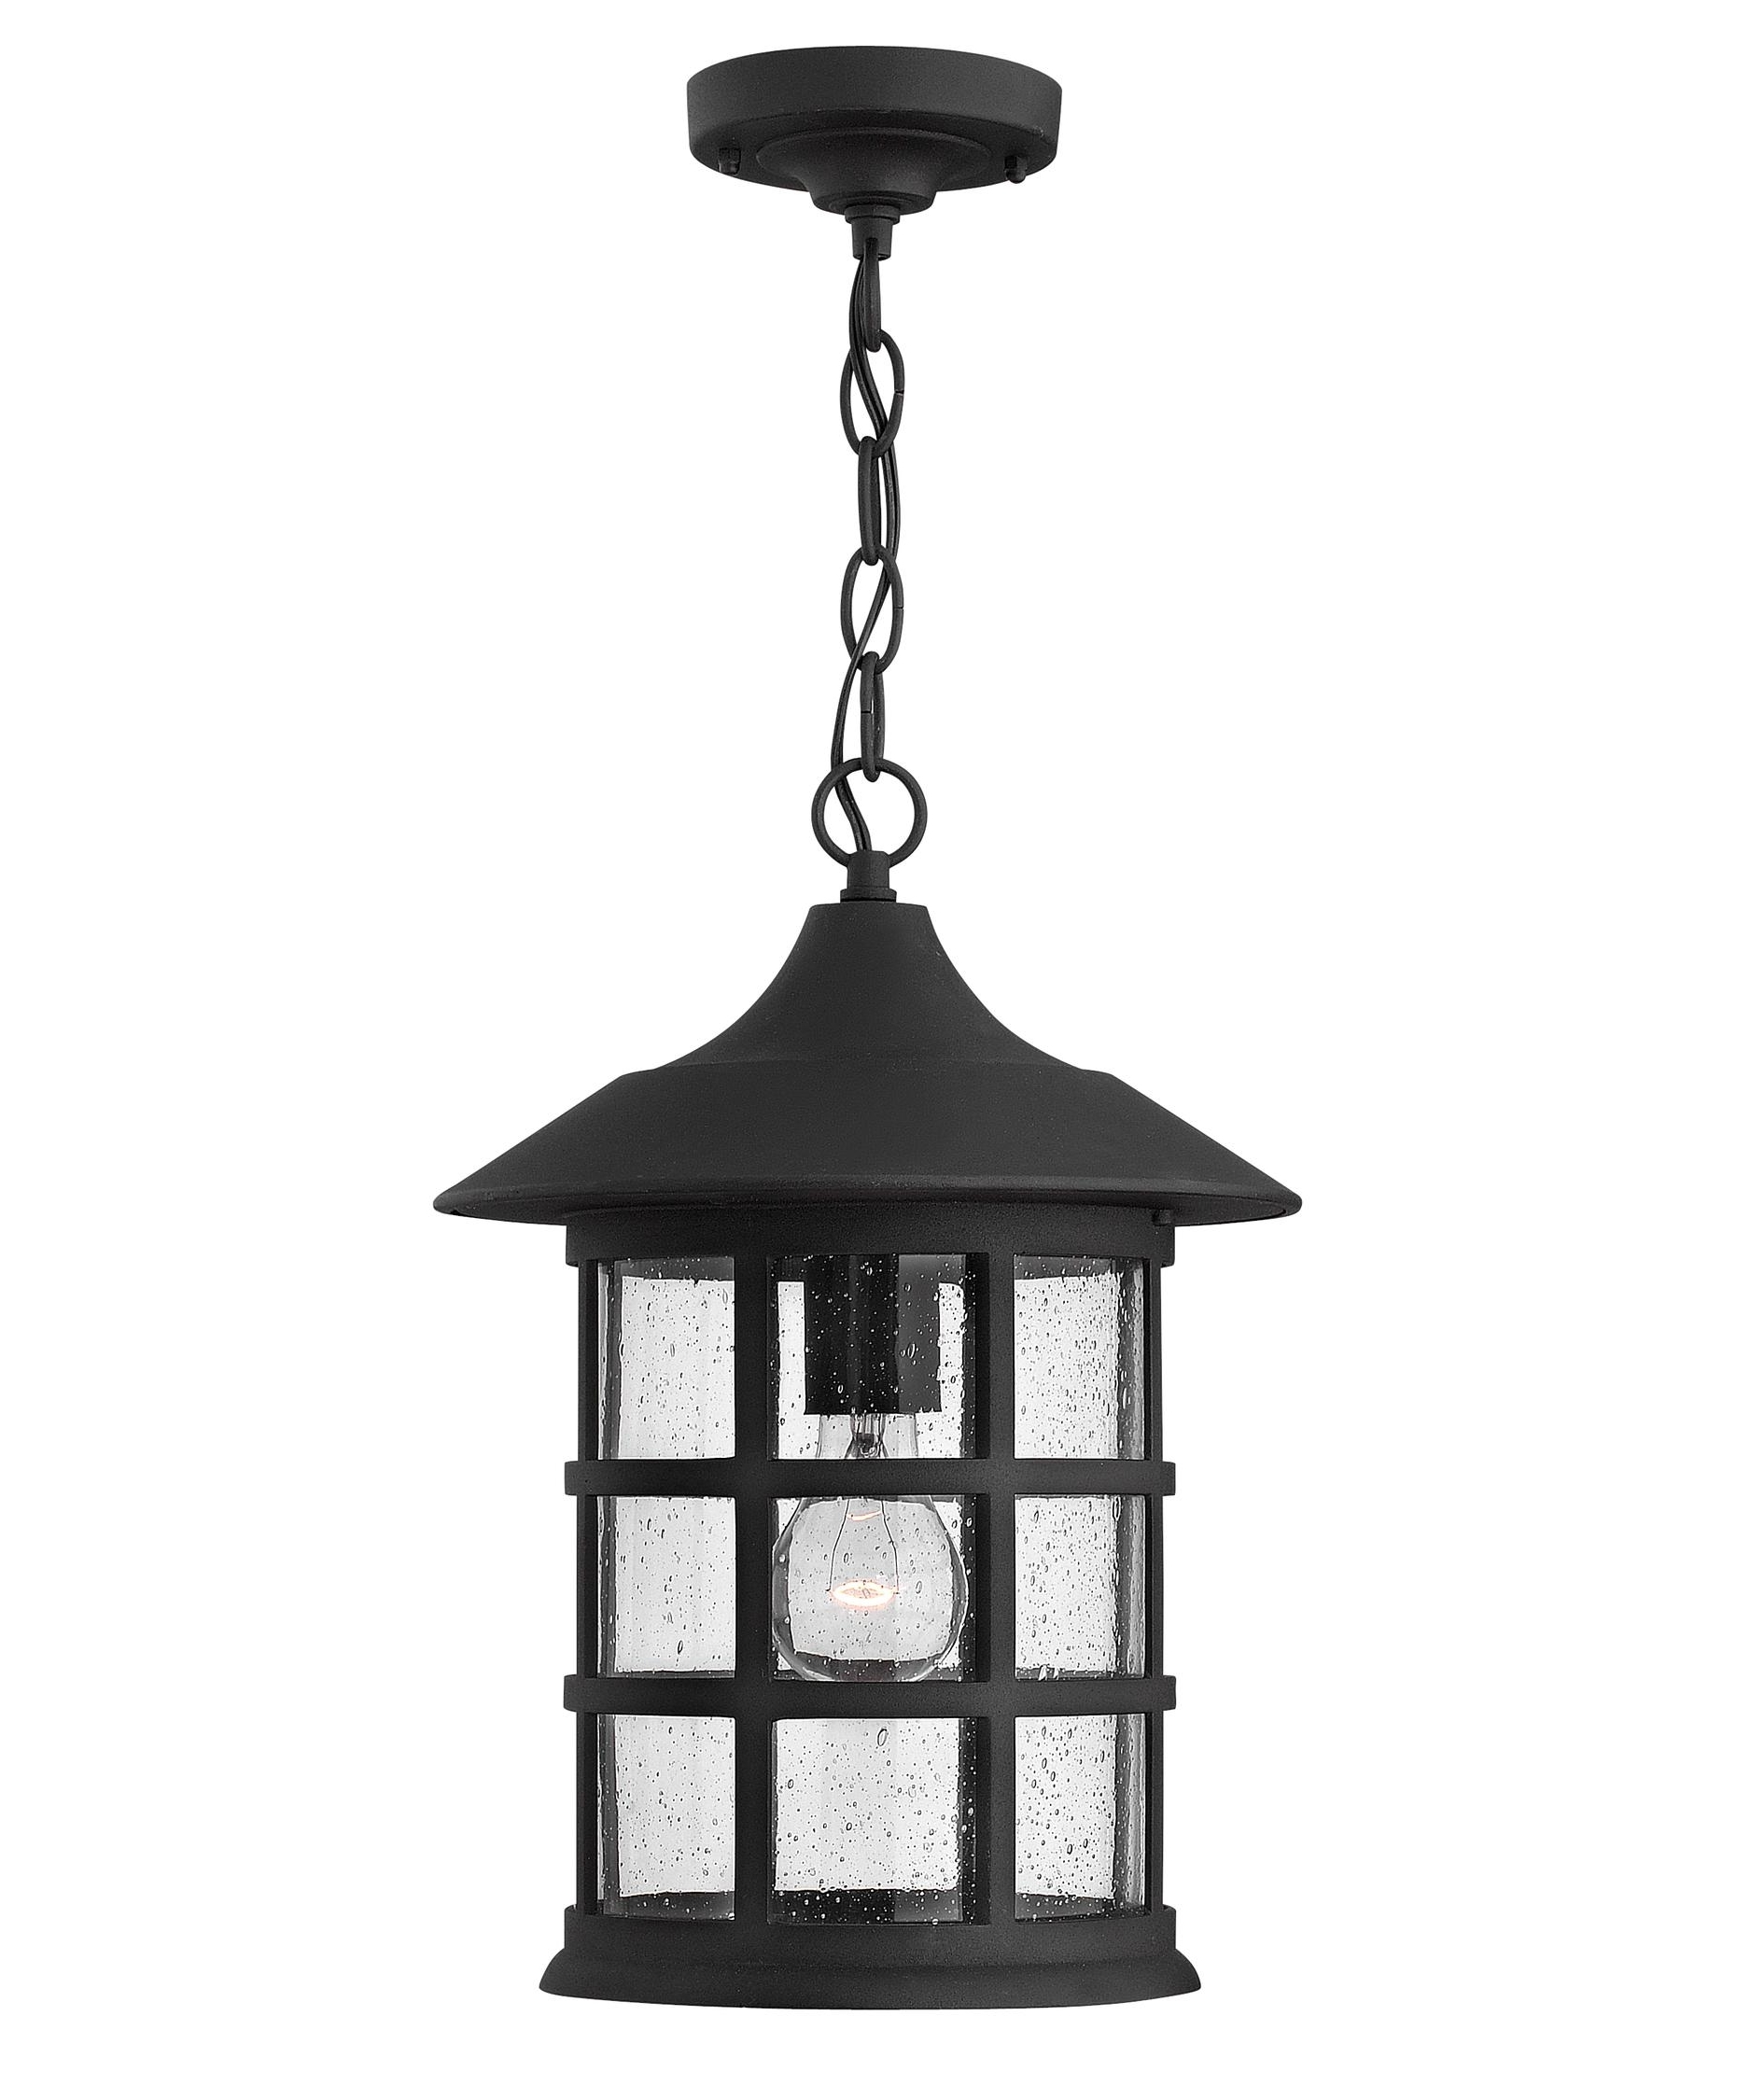 Favorite Hinkley Lighting 1802 Freeport 10 Inch Wide 1 Light Outdoor Hanging Intended For Outdoor Hanging Lanterns With Candles (View 3 of 20)